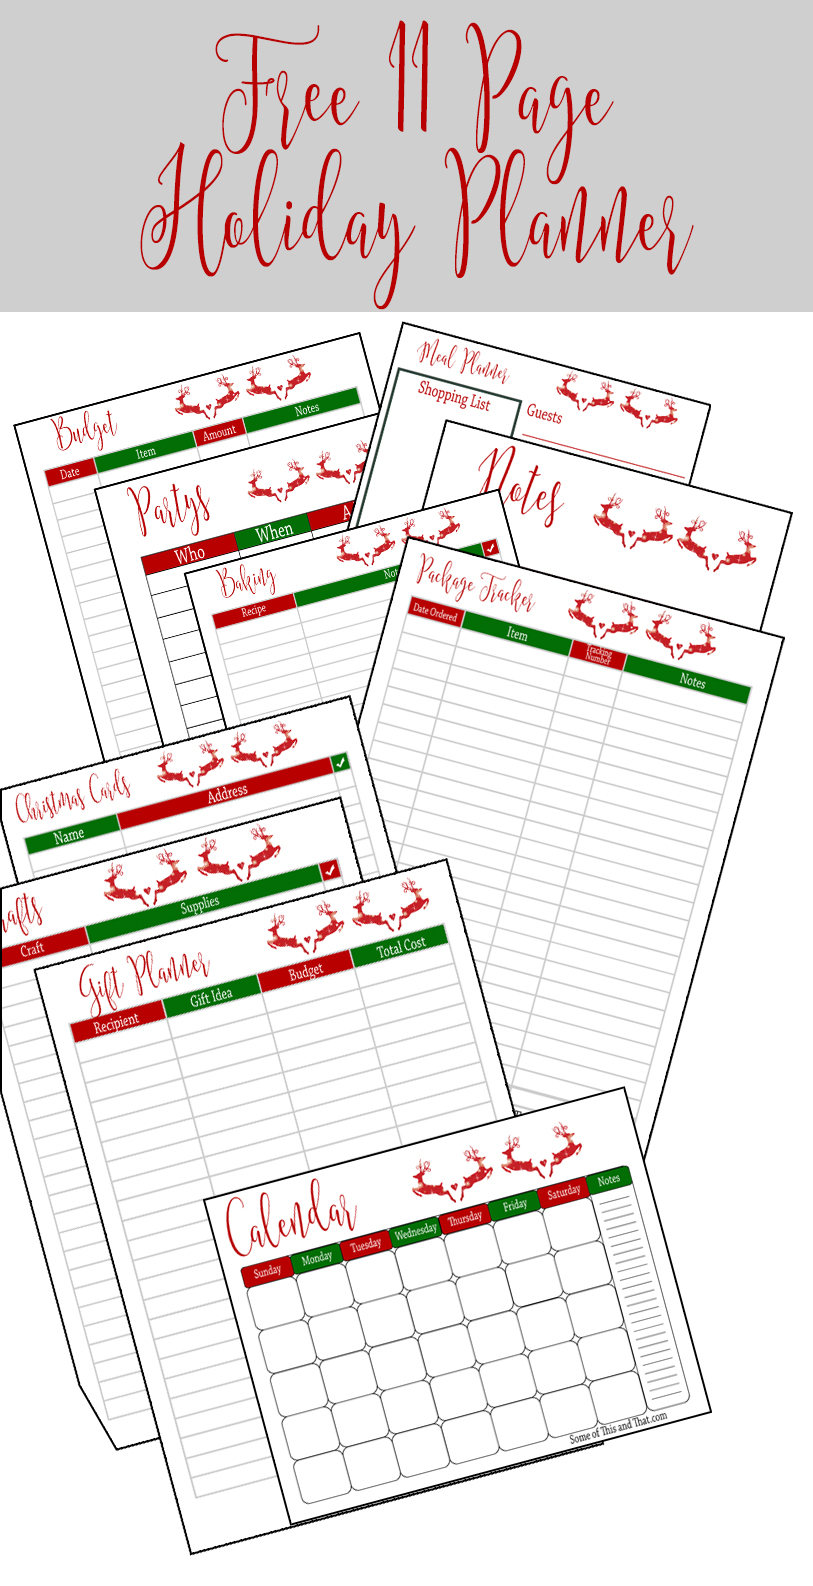 Free Holiday Planner